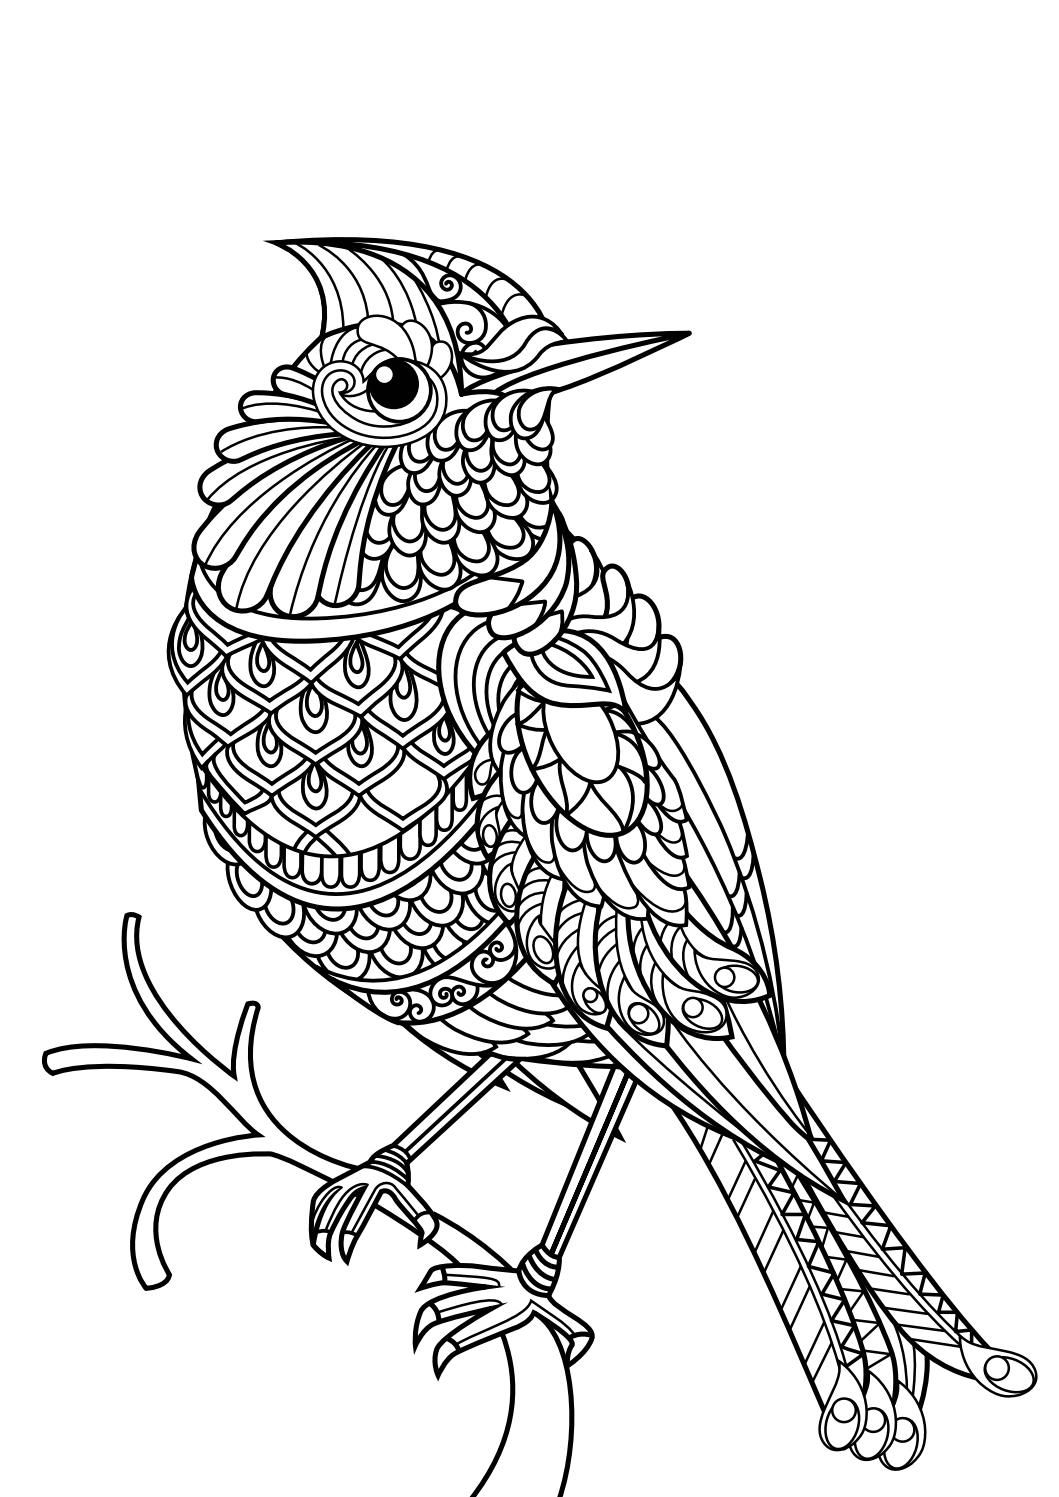 Animal Coloring Pages Pdf Bird Coloring Pages Mandala Coloring